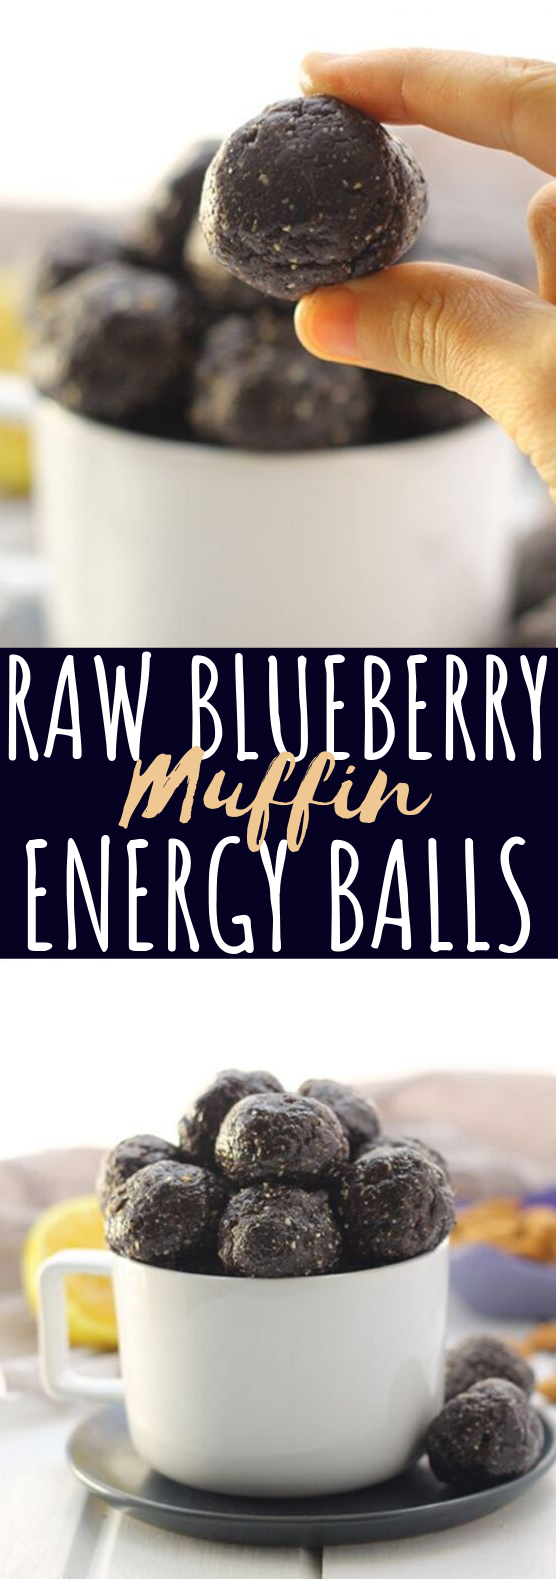 Raw Blueberry Muffin Energy Balls #healthy #snacks